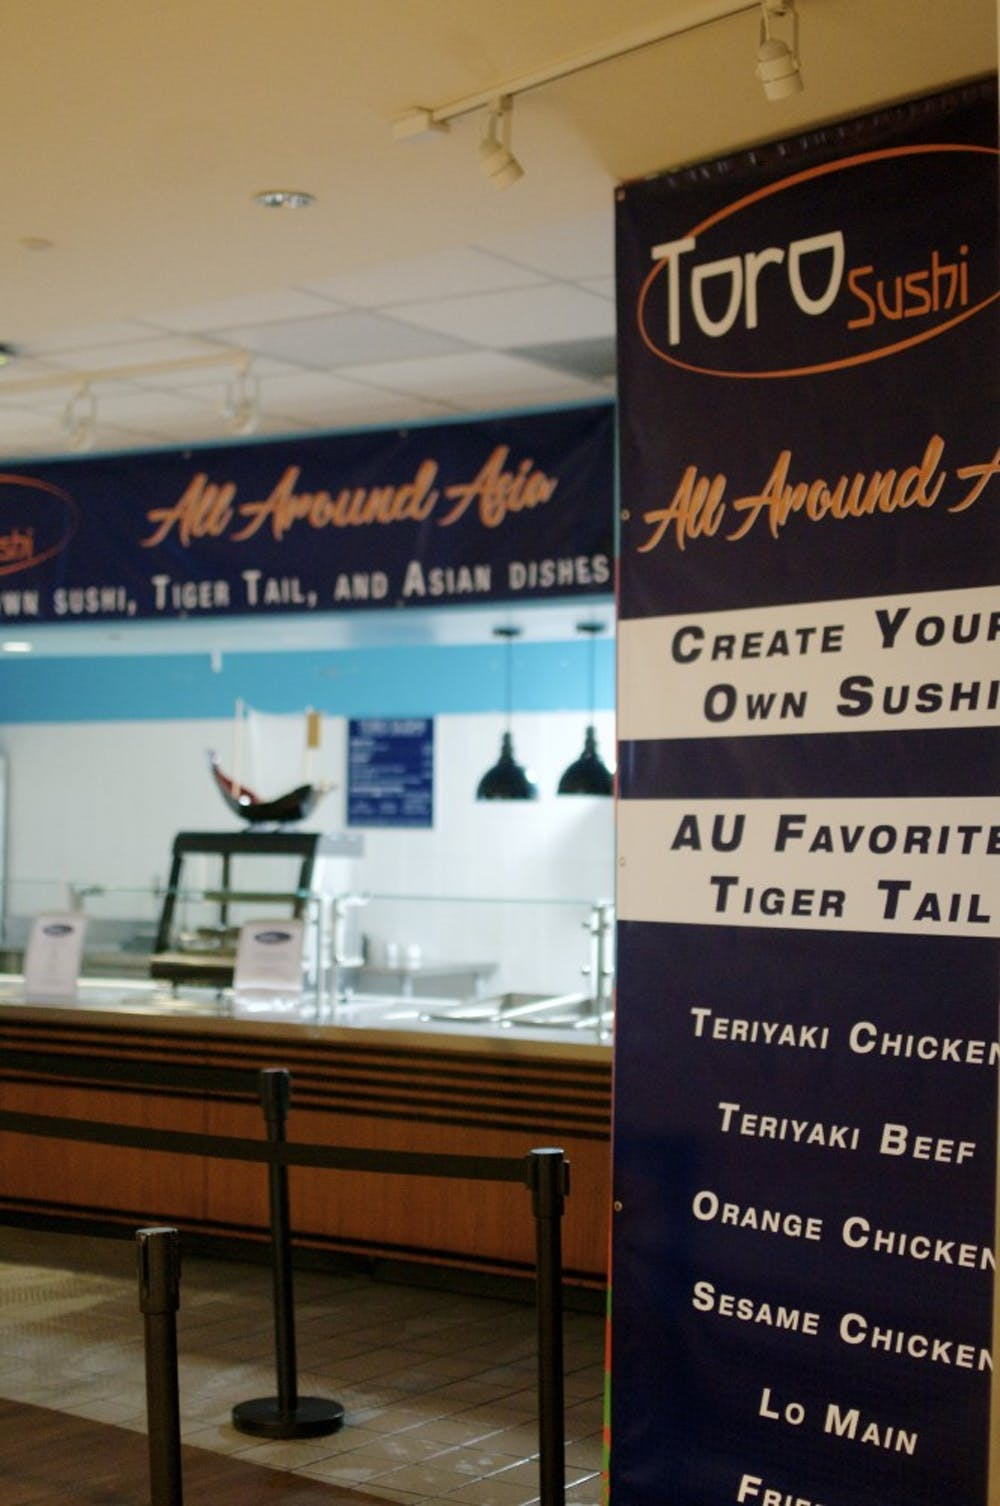 Toro Sushi now open in Student Center